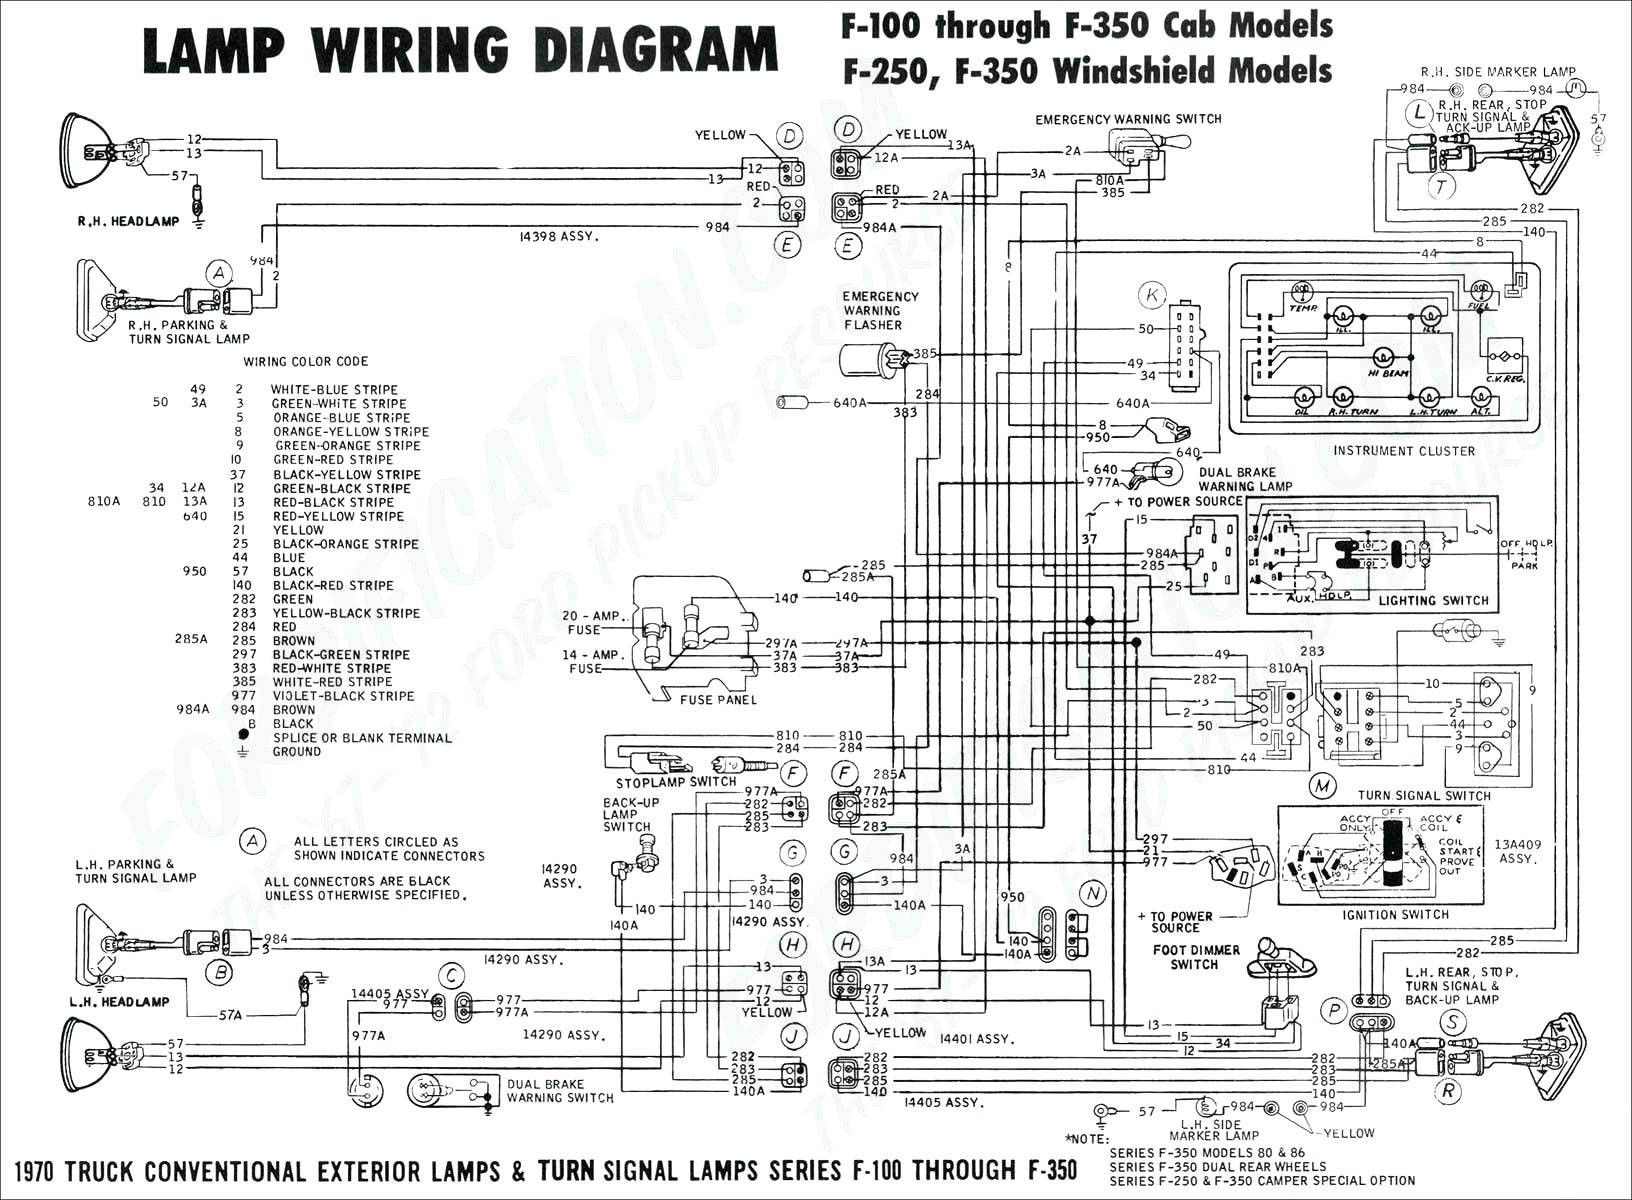 Gmc Sierra Tail Light Wiring Diagram Honda Accord Nissan Maxima Honda Civic